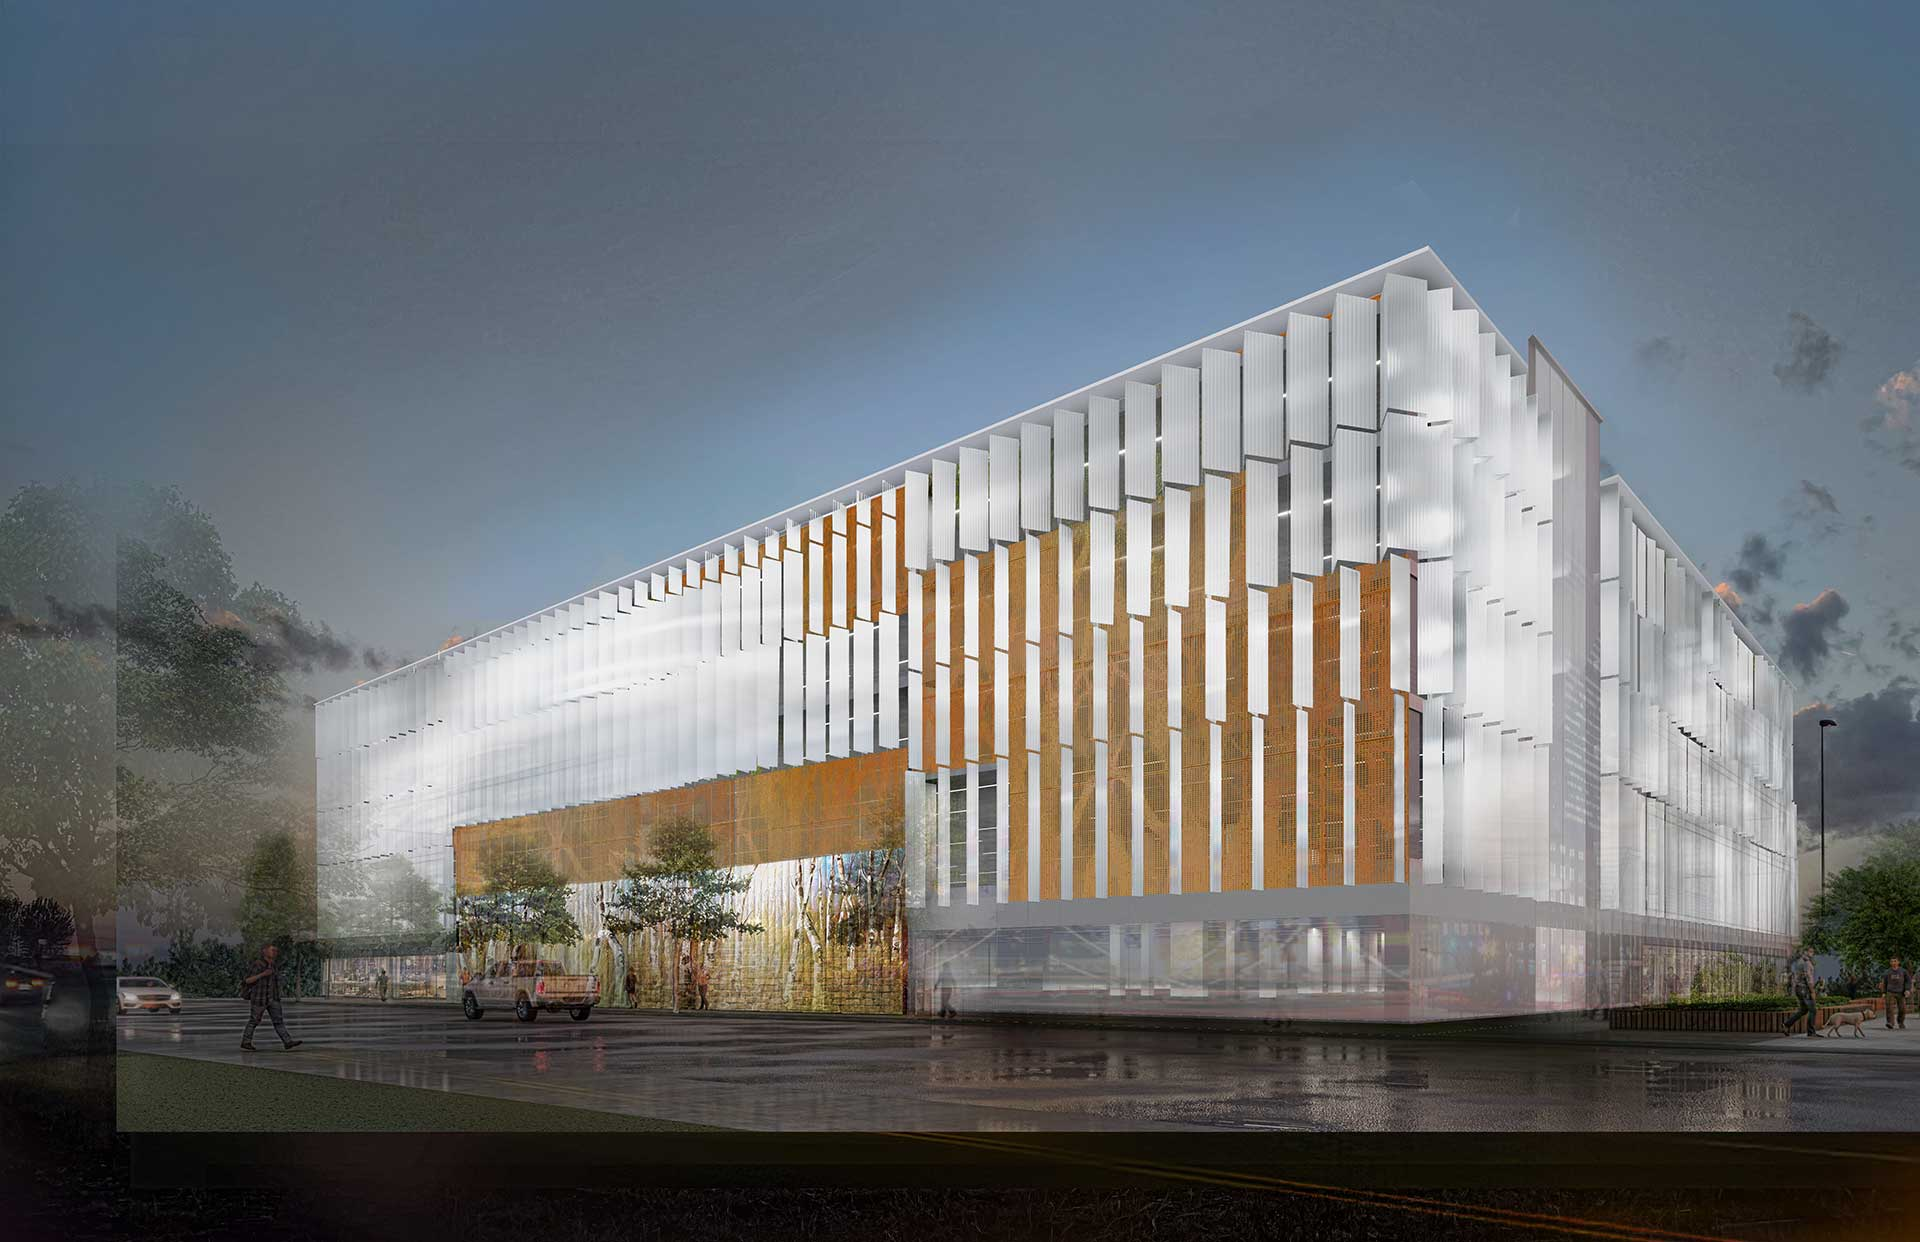 When complete, the Bagley Mobility Hub will be a state-of-the-art, tech-enabled mobility center